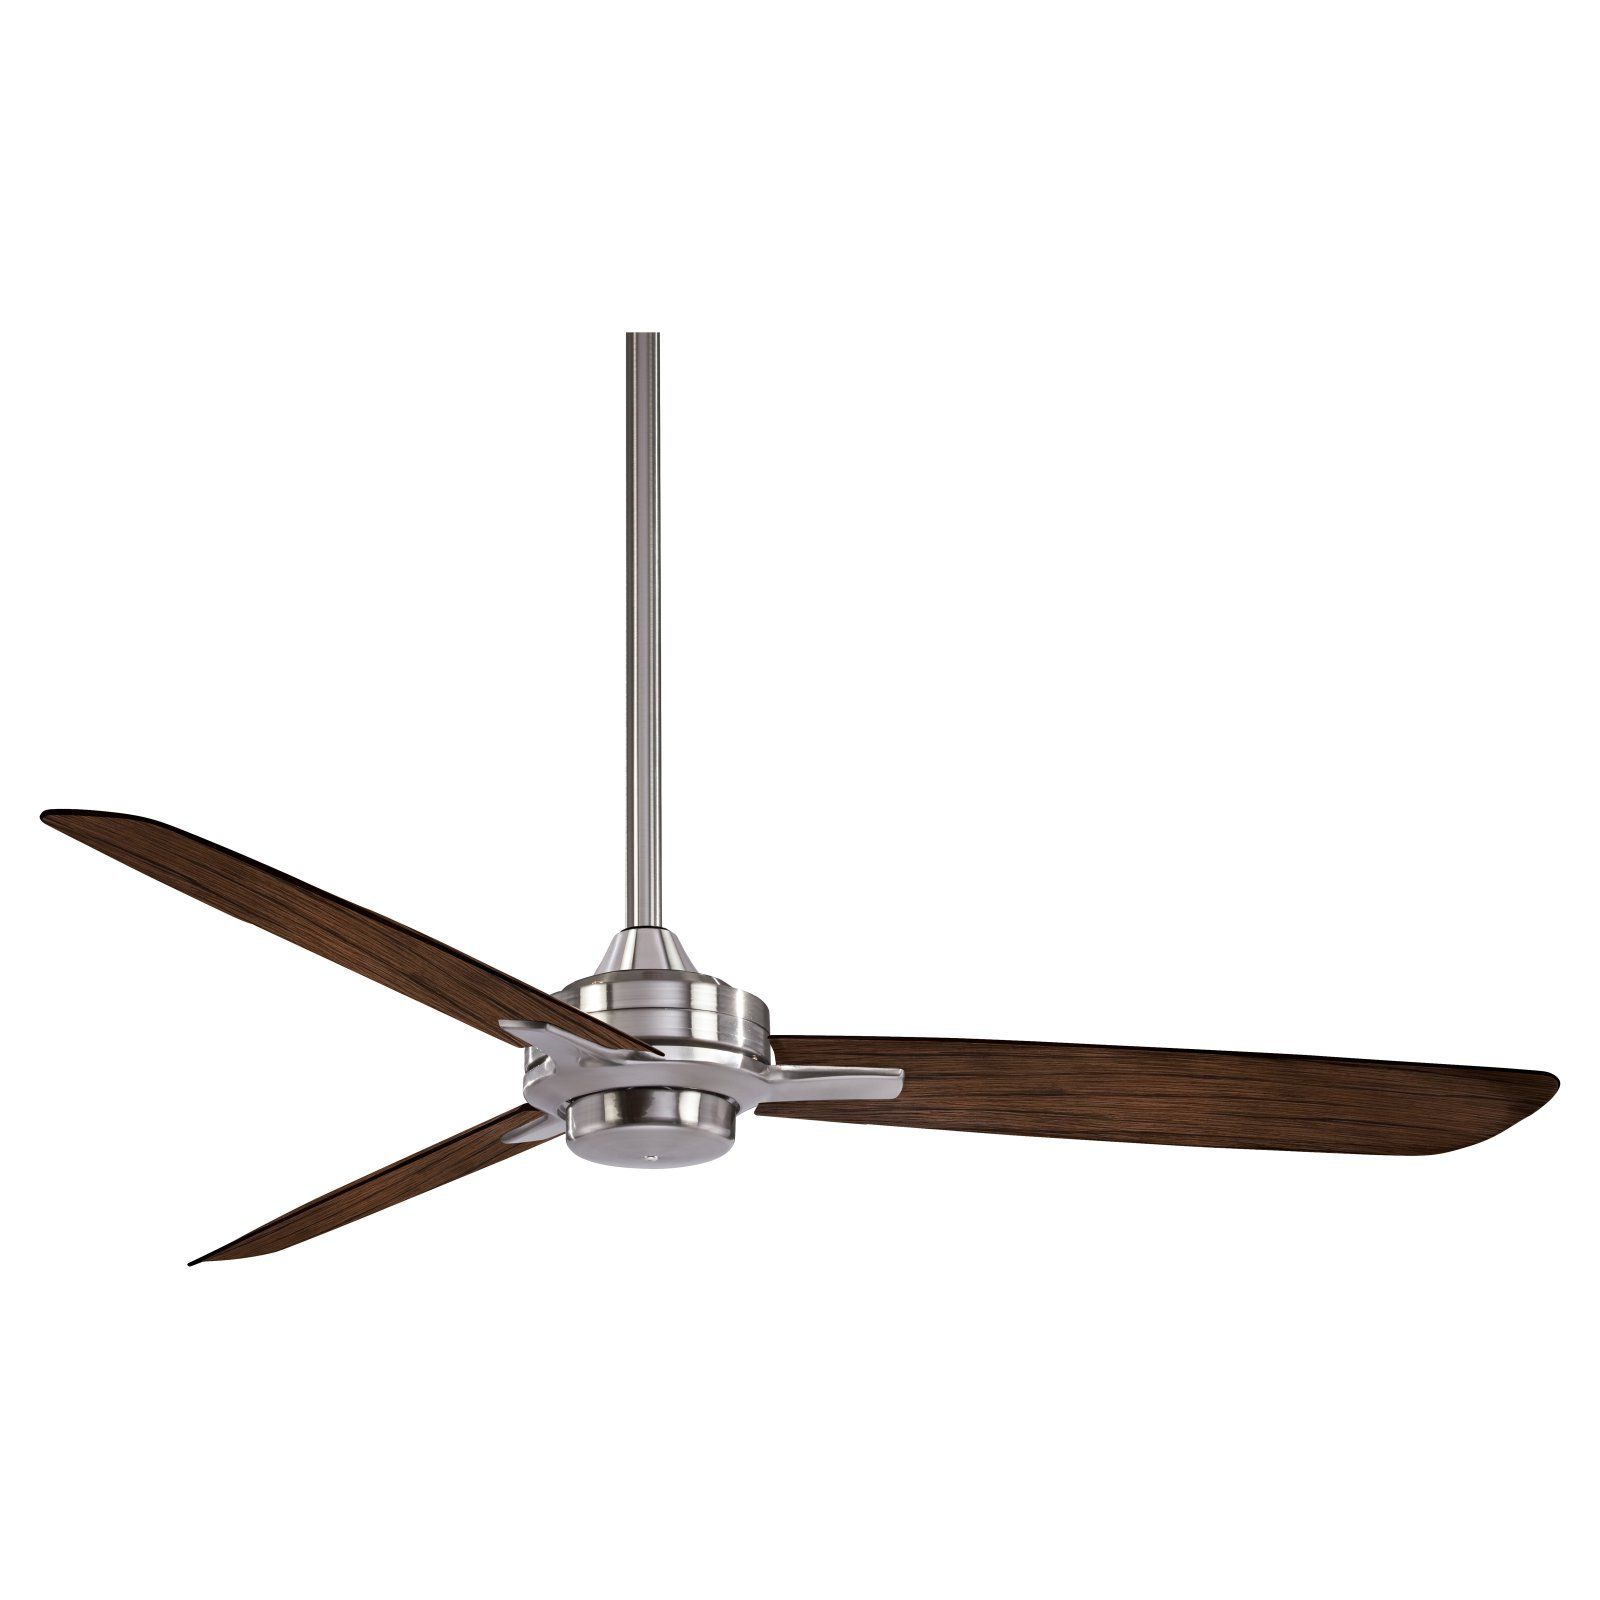 Minka Aire Rudolph F727 Ceiling Fan Brushed Nickel Medium Maple